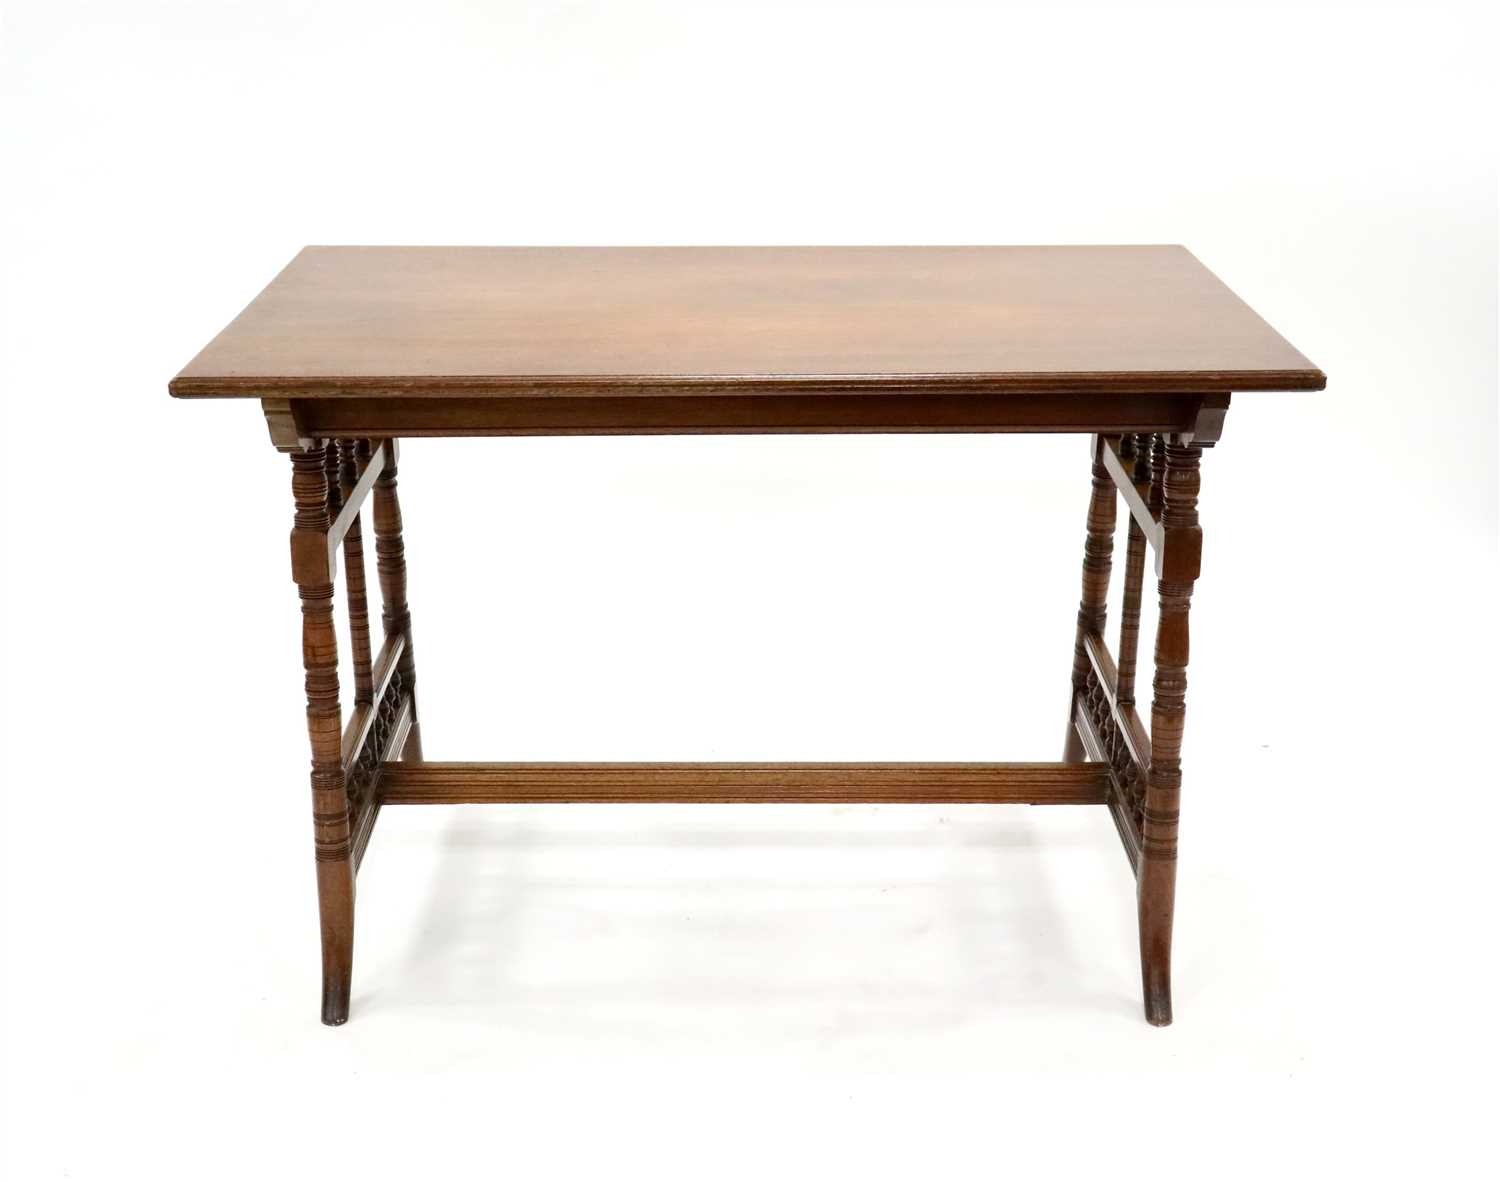 Lot 222-Collinson & Lock, a mahogany side table